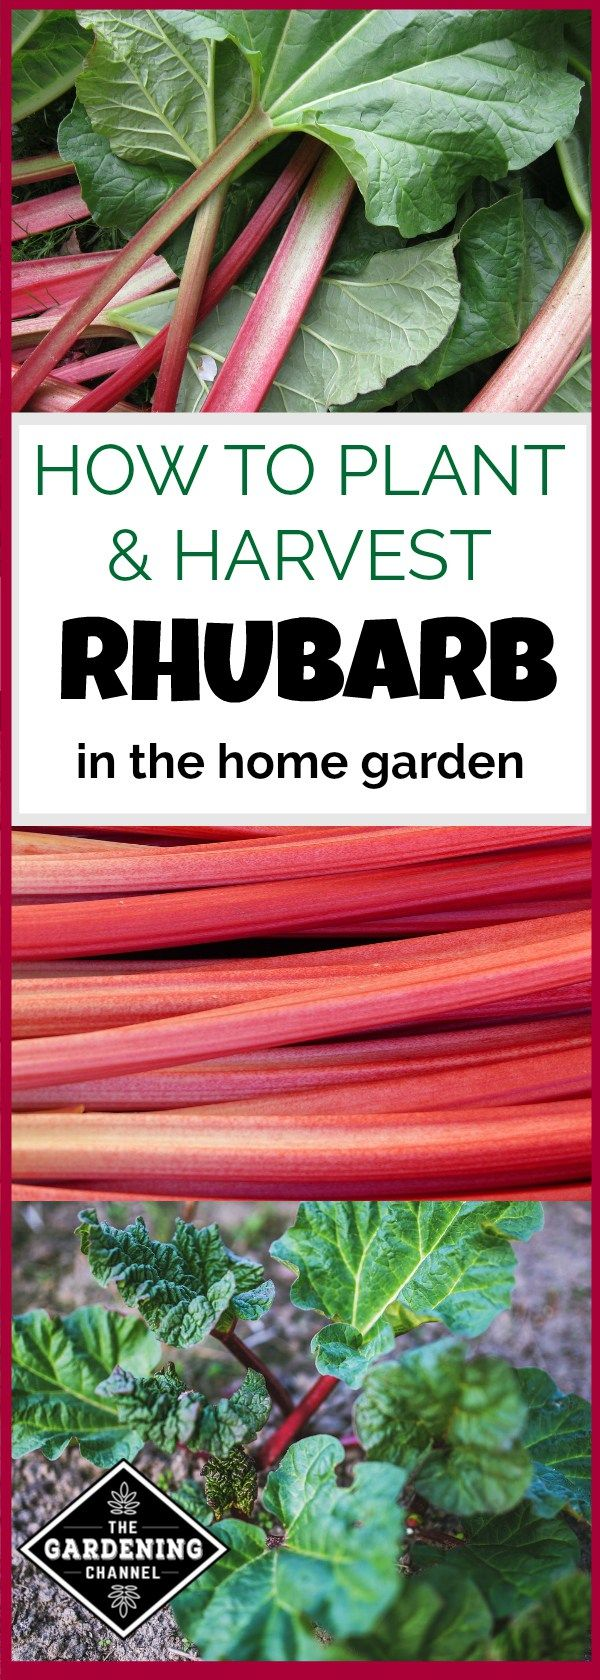 How to plant rhubarb in the fall - Have You Thought About Planting And Growing Rhubarb Rhubarb Is Best Planted Dormant In Fall